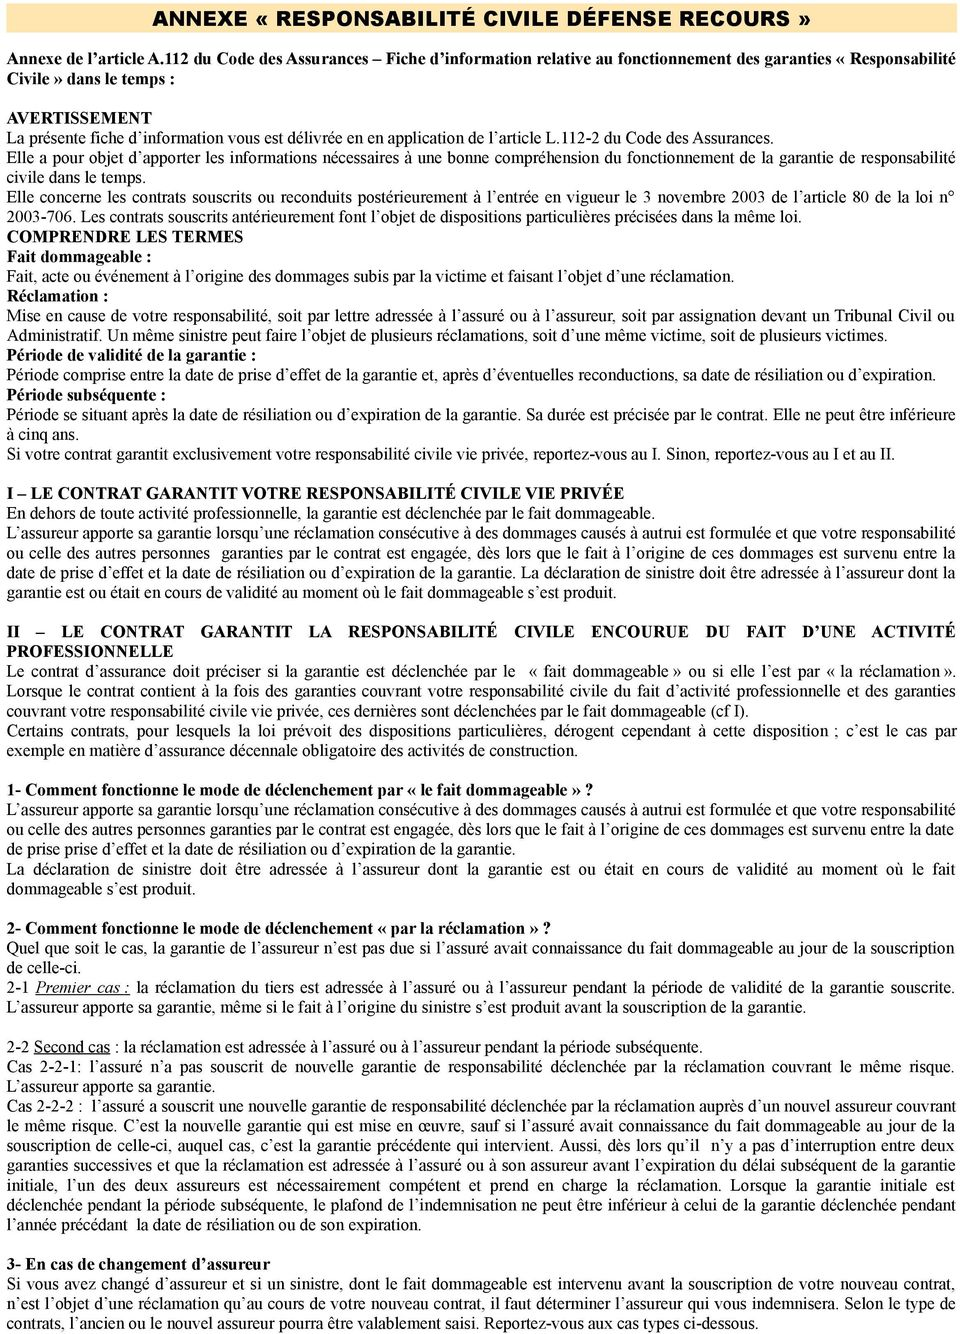 application de l article L.112-2 du Code des Assurances.